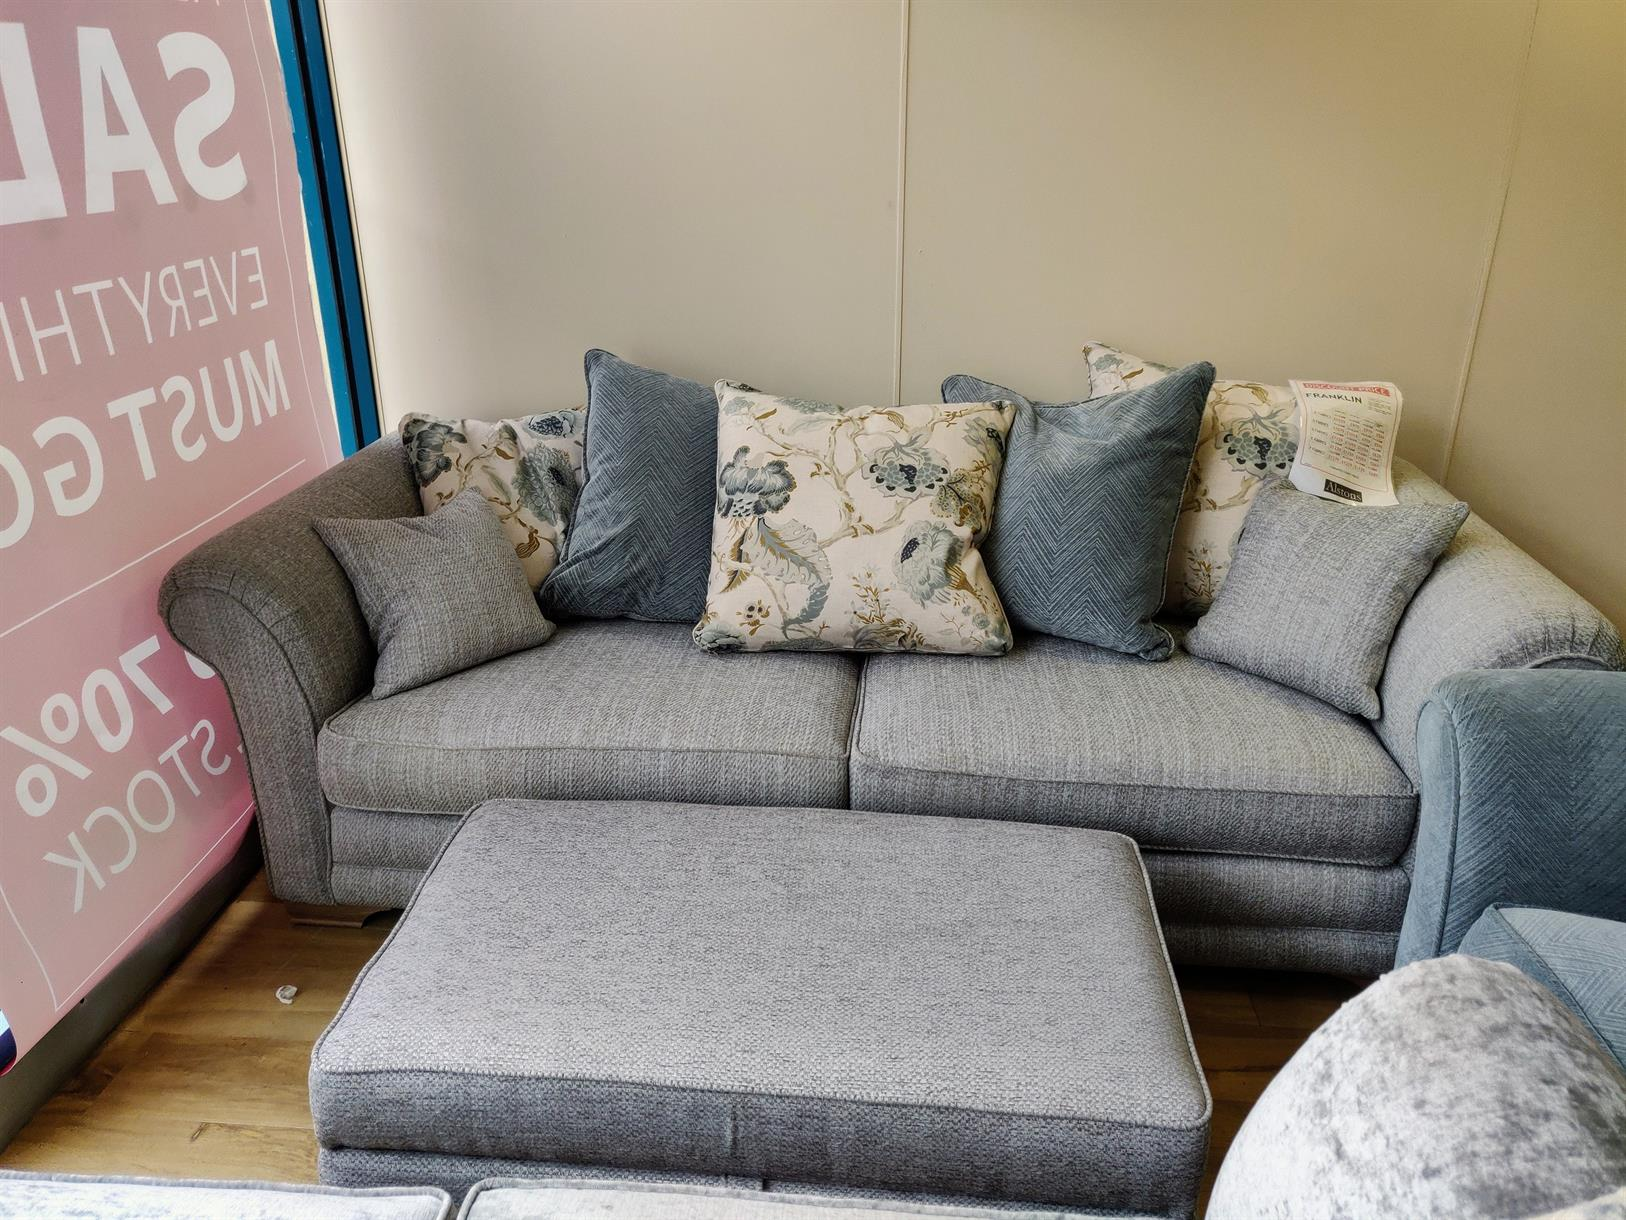 Alstons Franklin Grand Sofa, Chair and Storage Ottoman